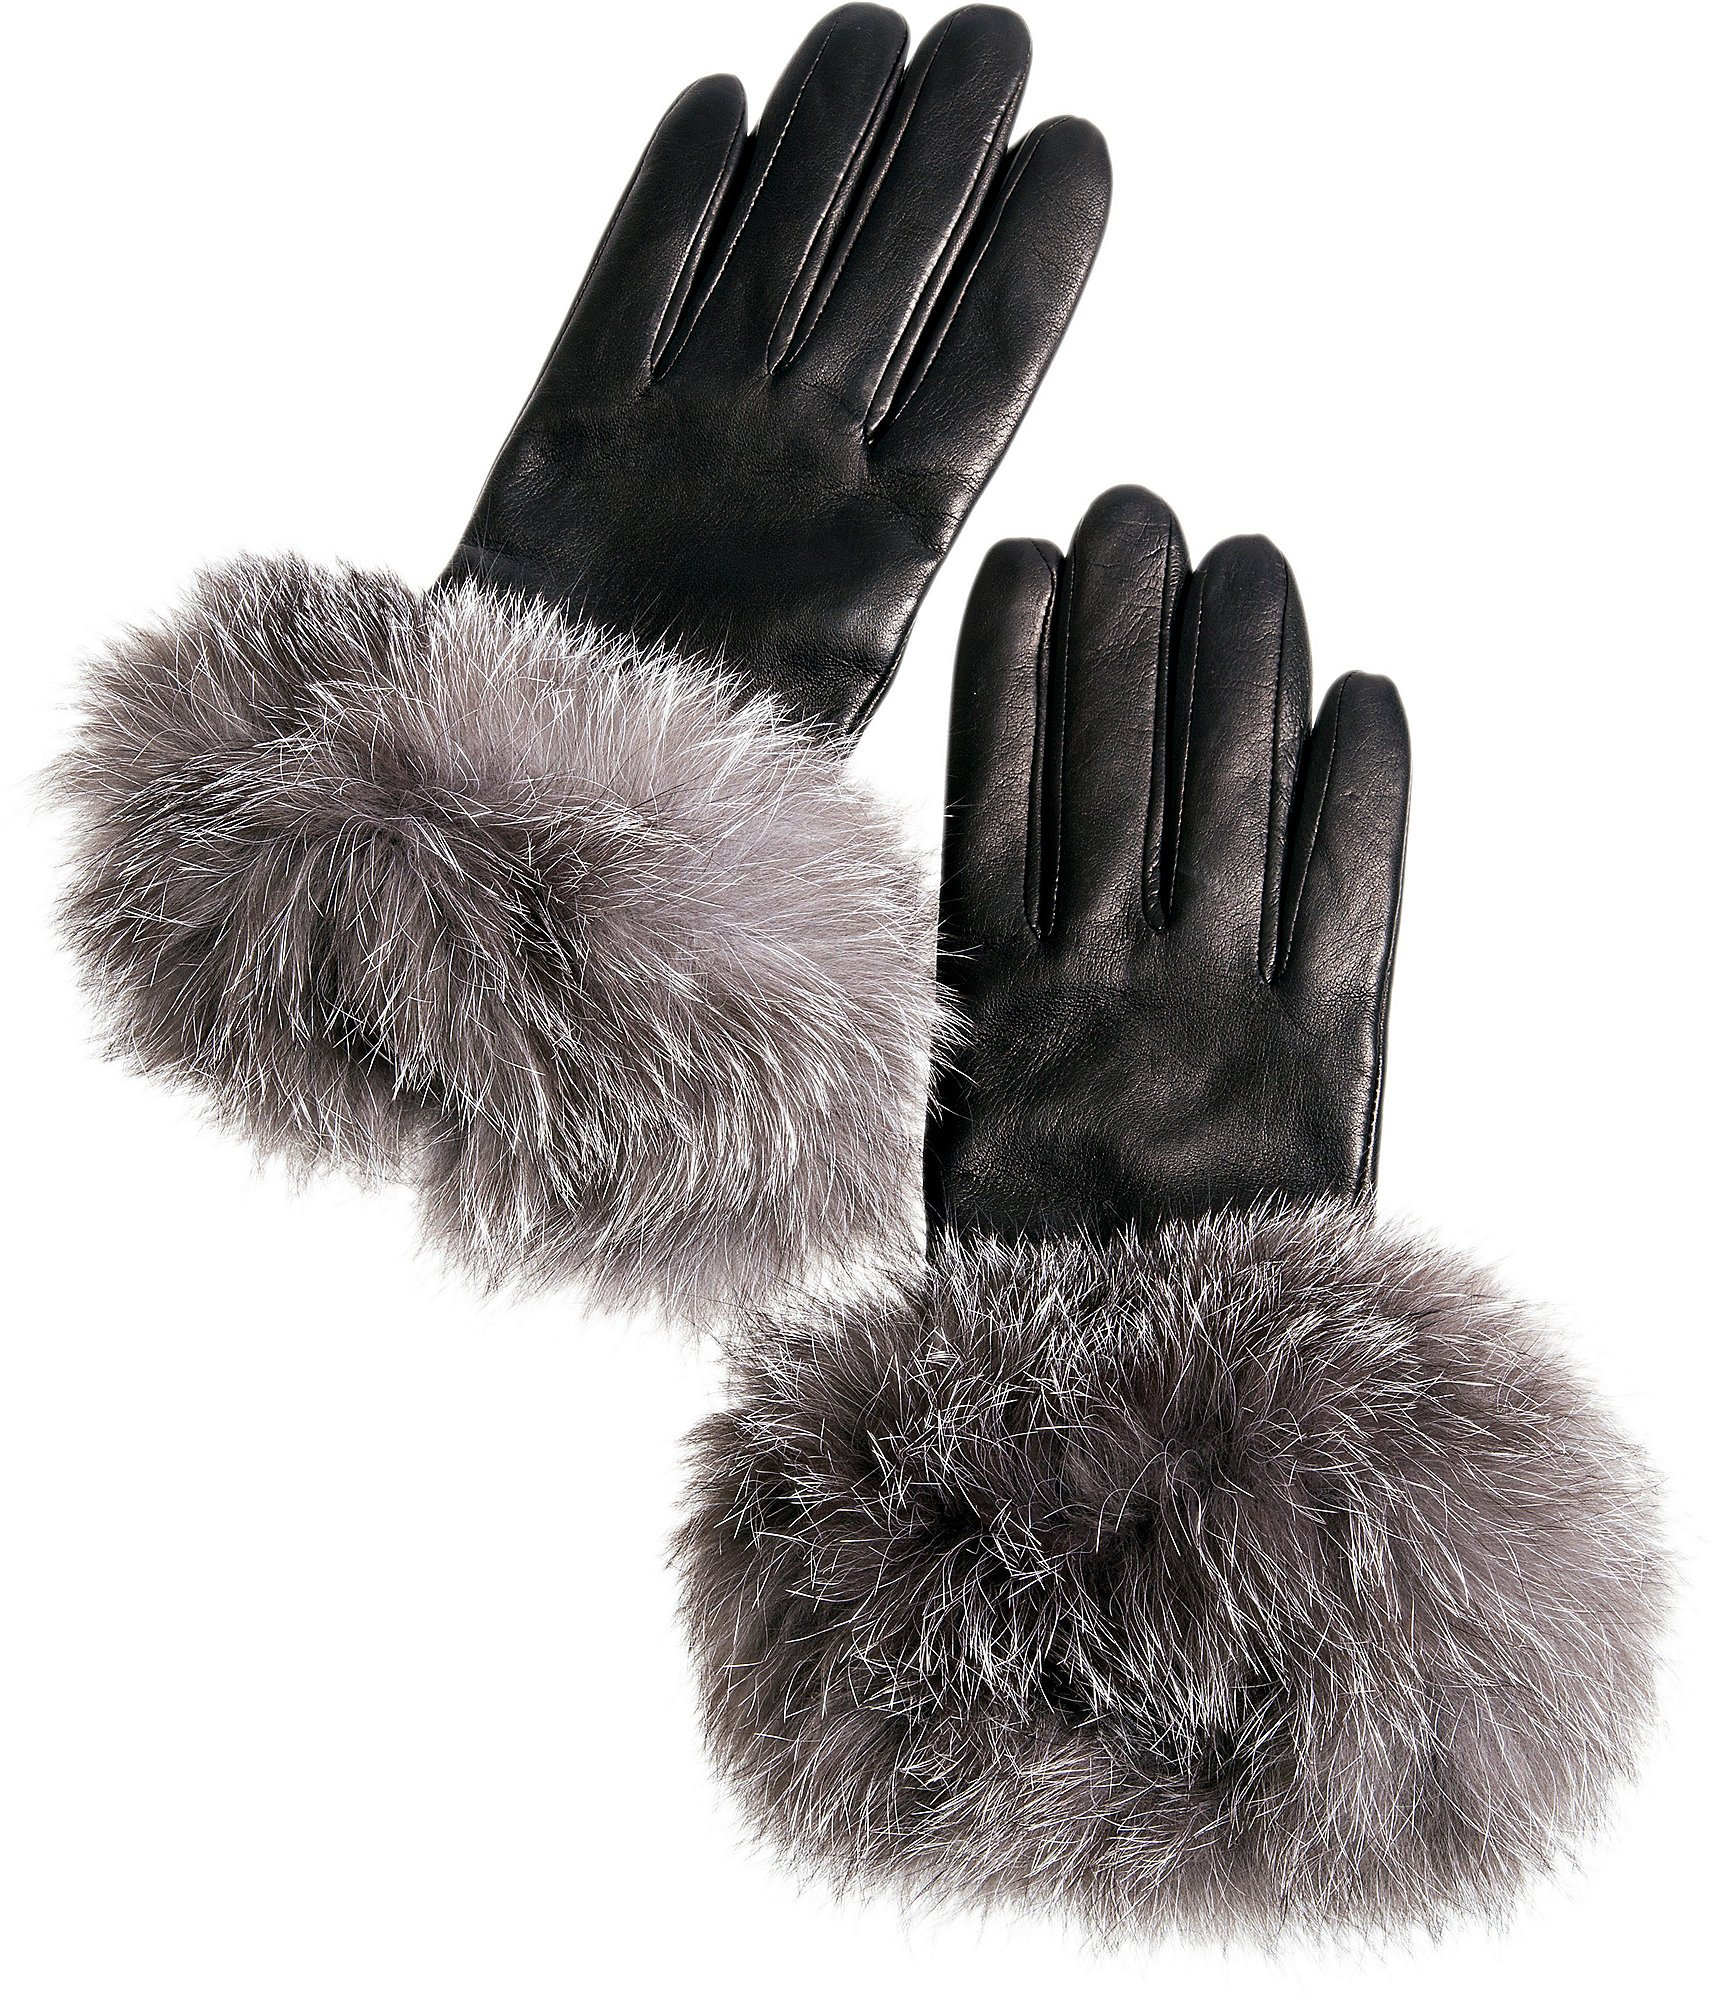 Women's Cashmere-Lined Lambskin Leather Gloves with Fox Fur Trim by Overland Sheepskin Co